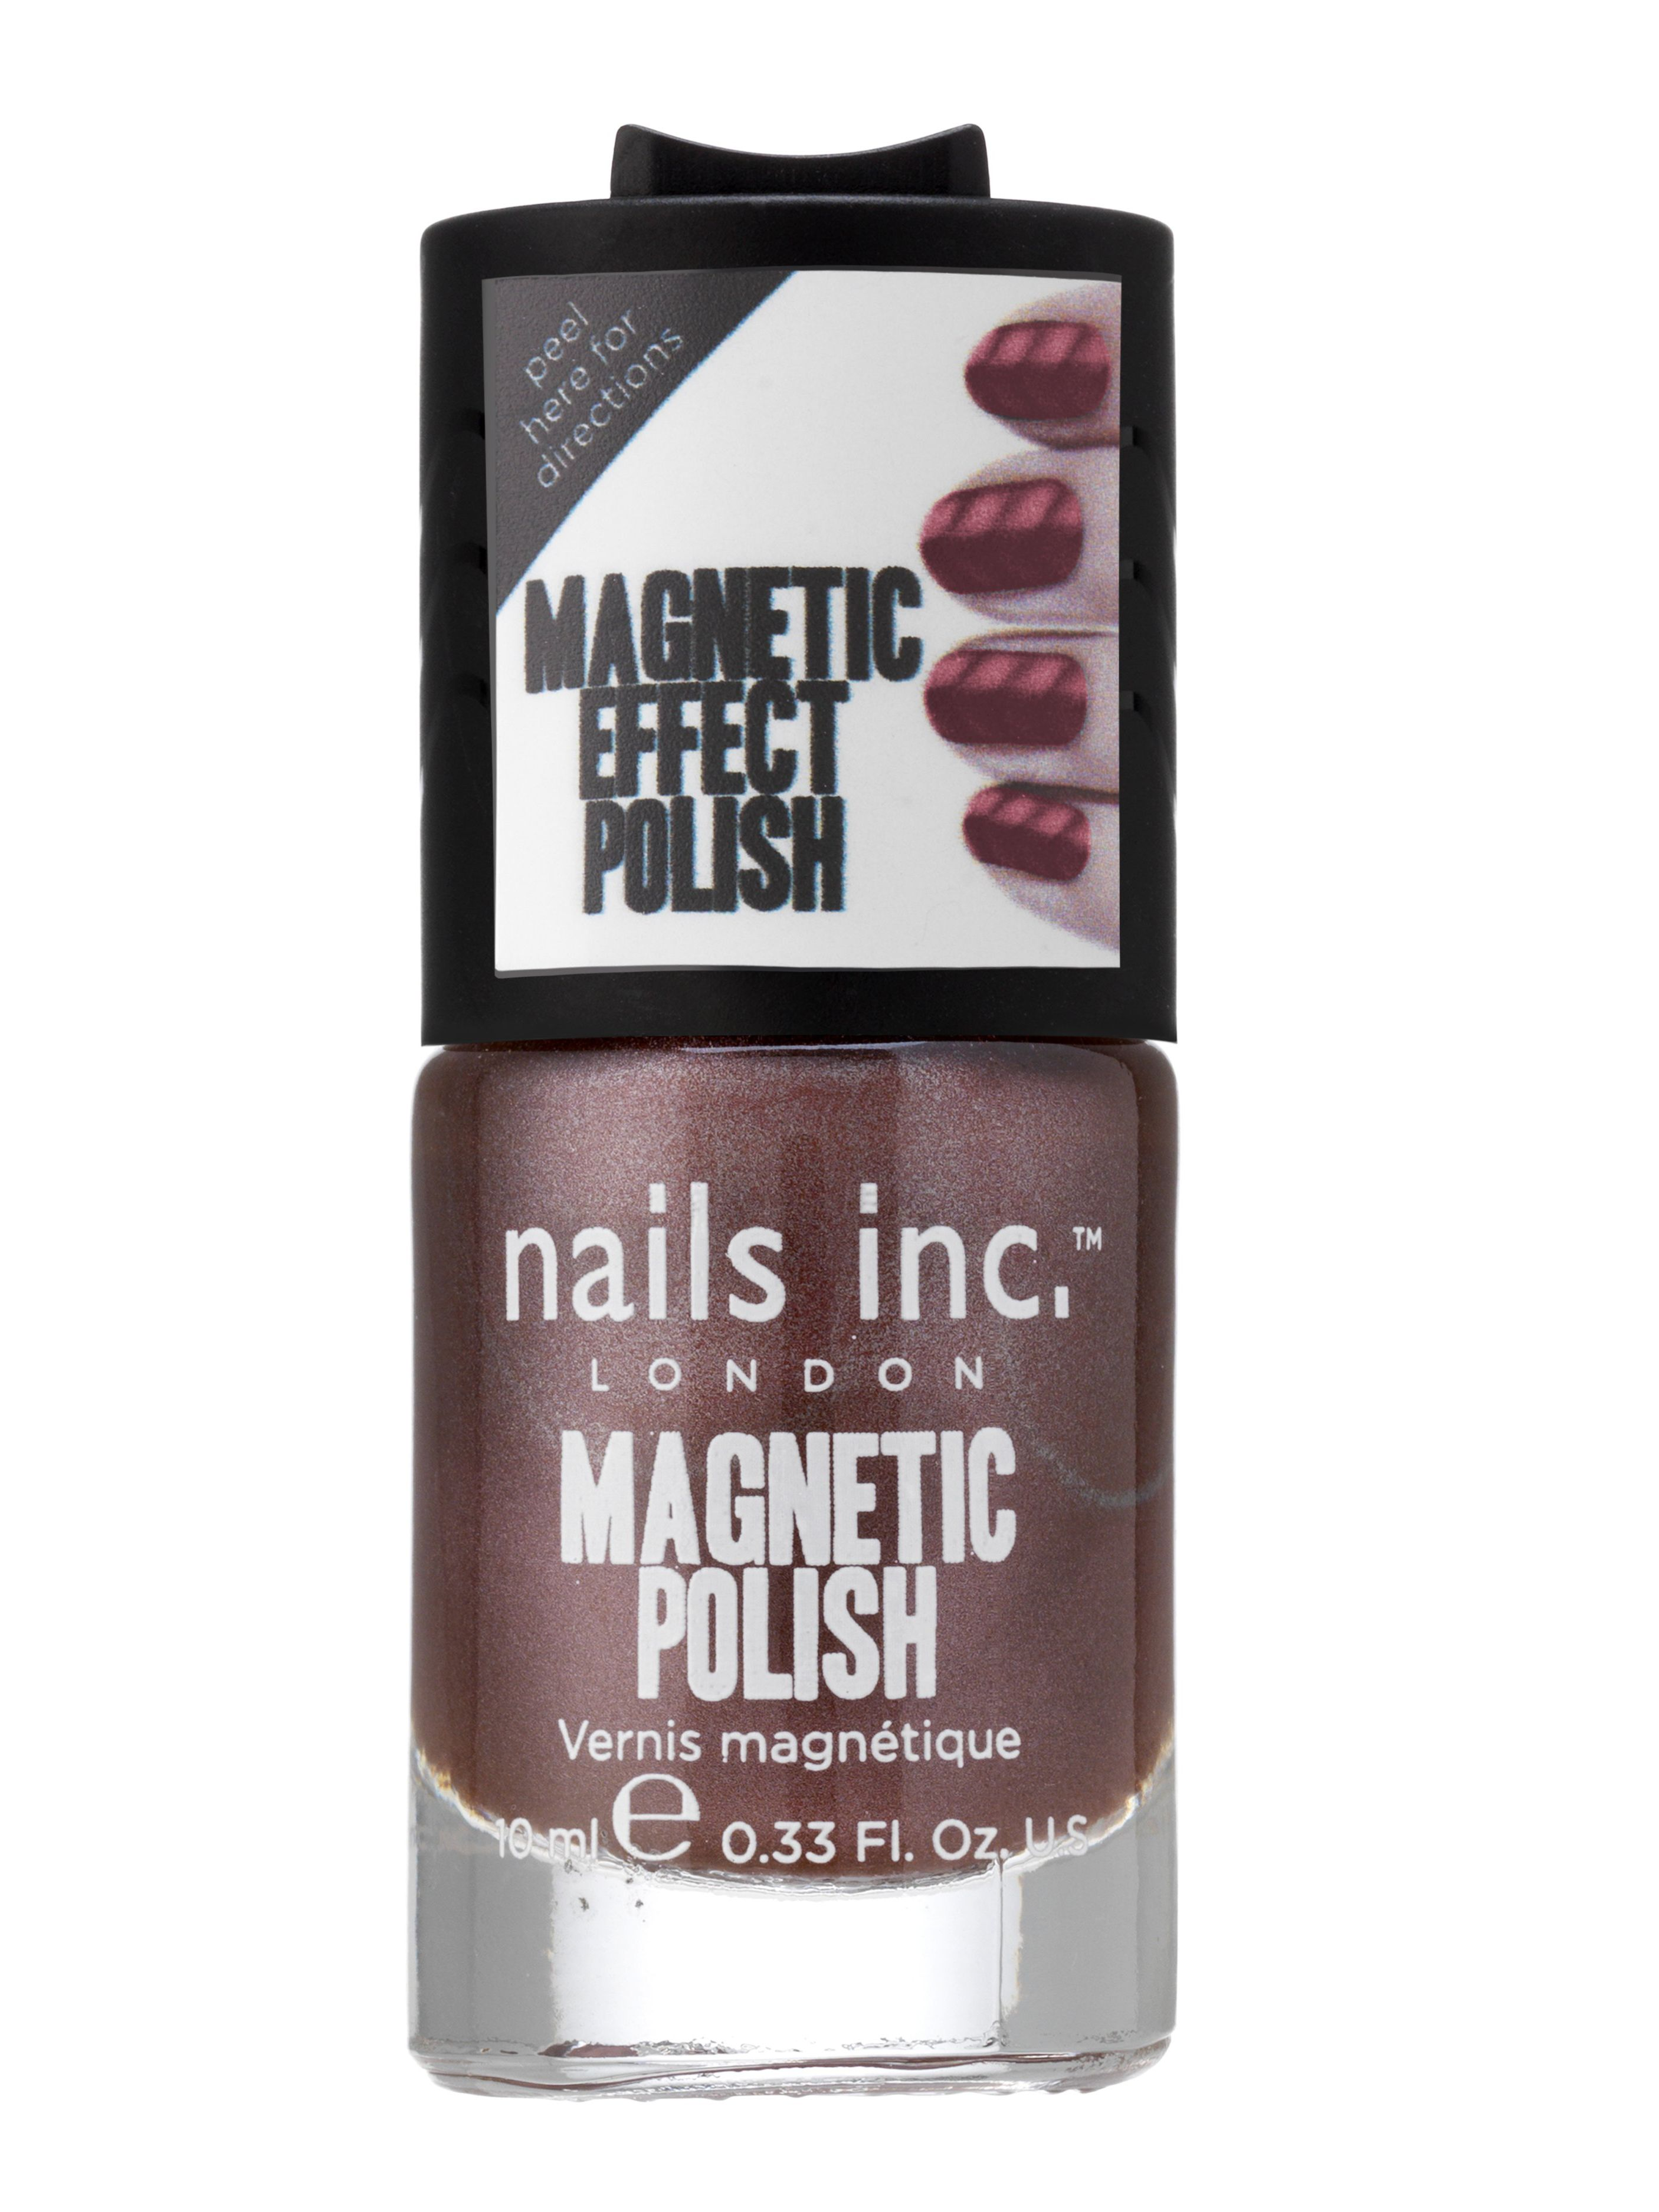 Kensington Palace Magnetic Polish